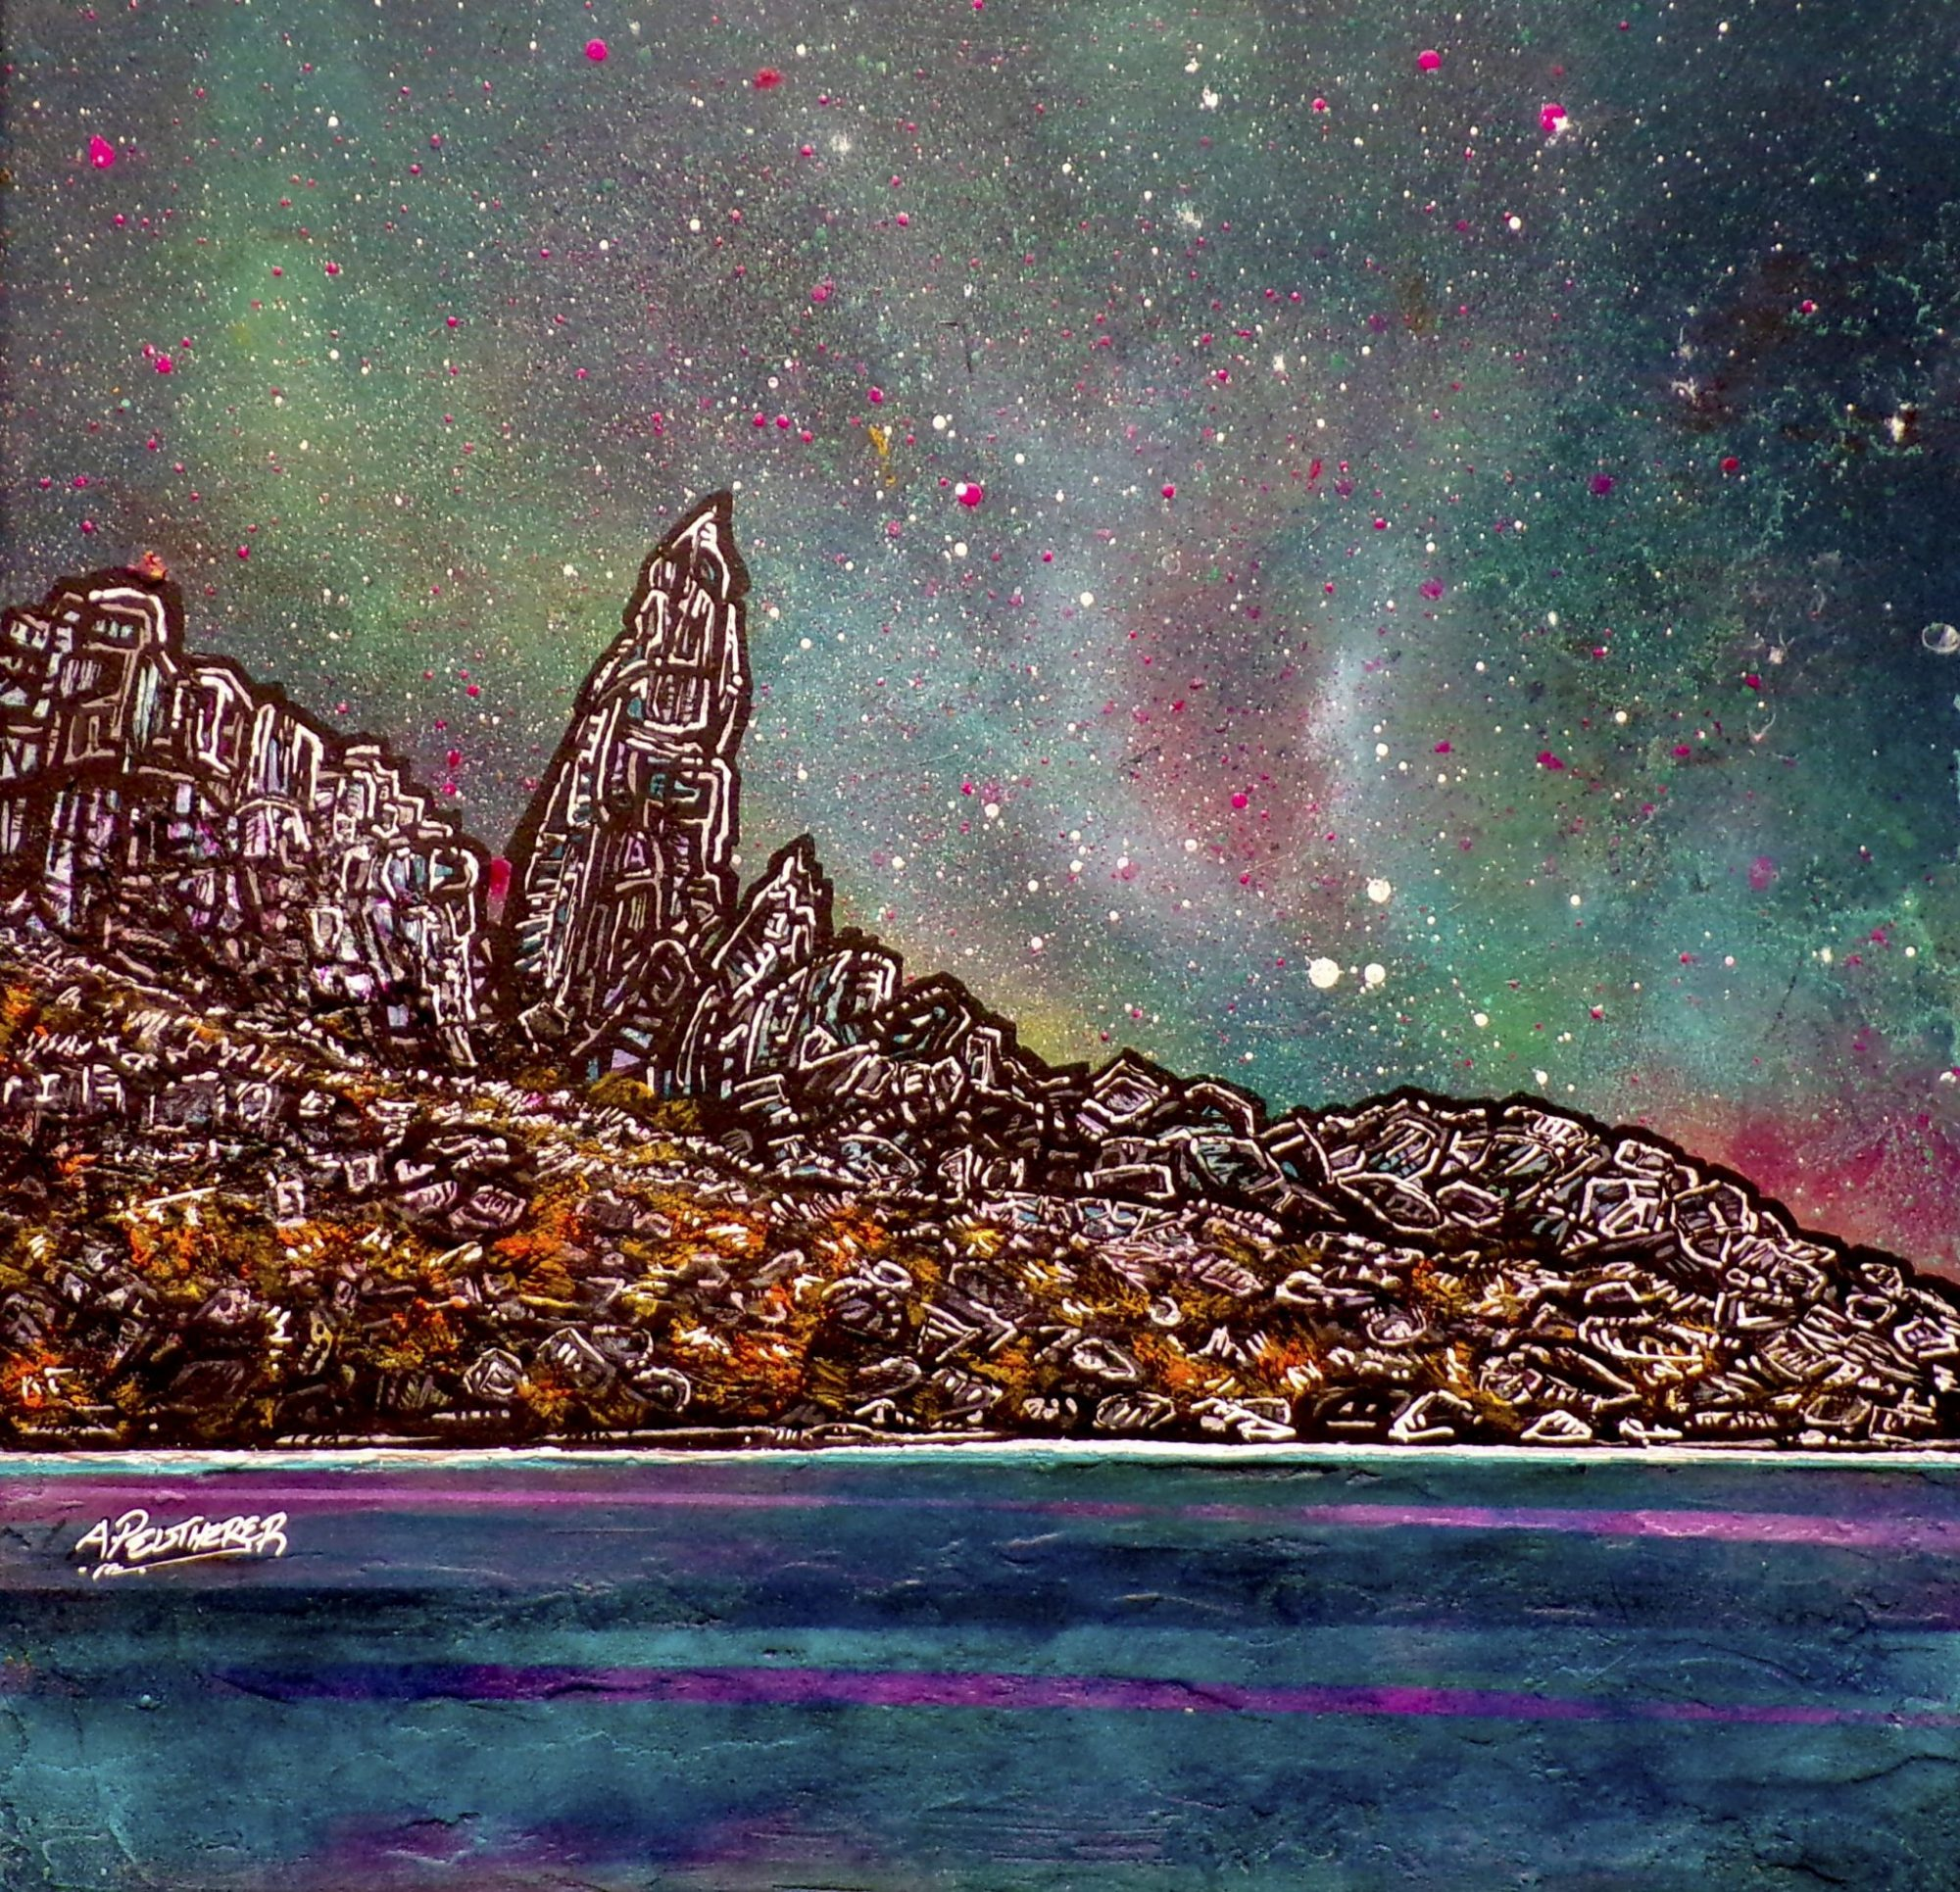 Storr, Trotternish, Skye - Original Scottish landscape painting and prints by artist A Peutherer